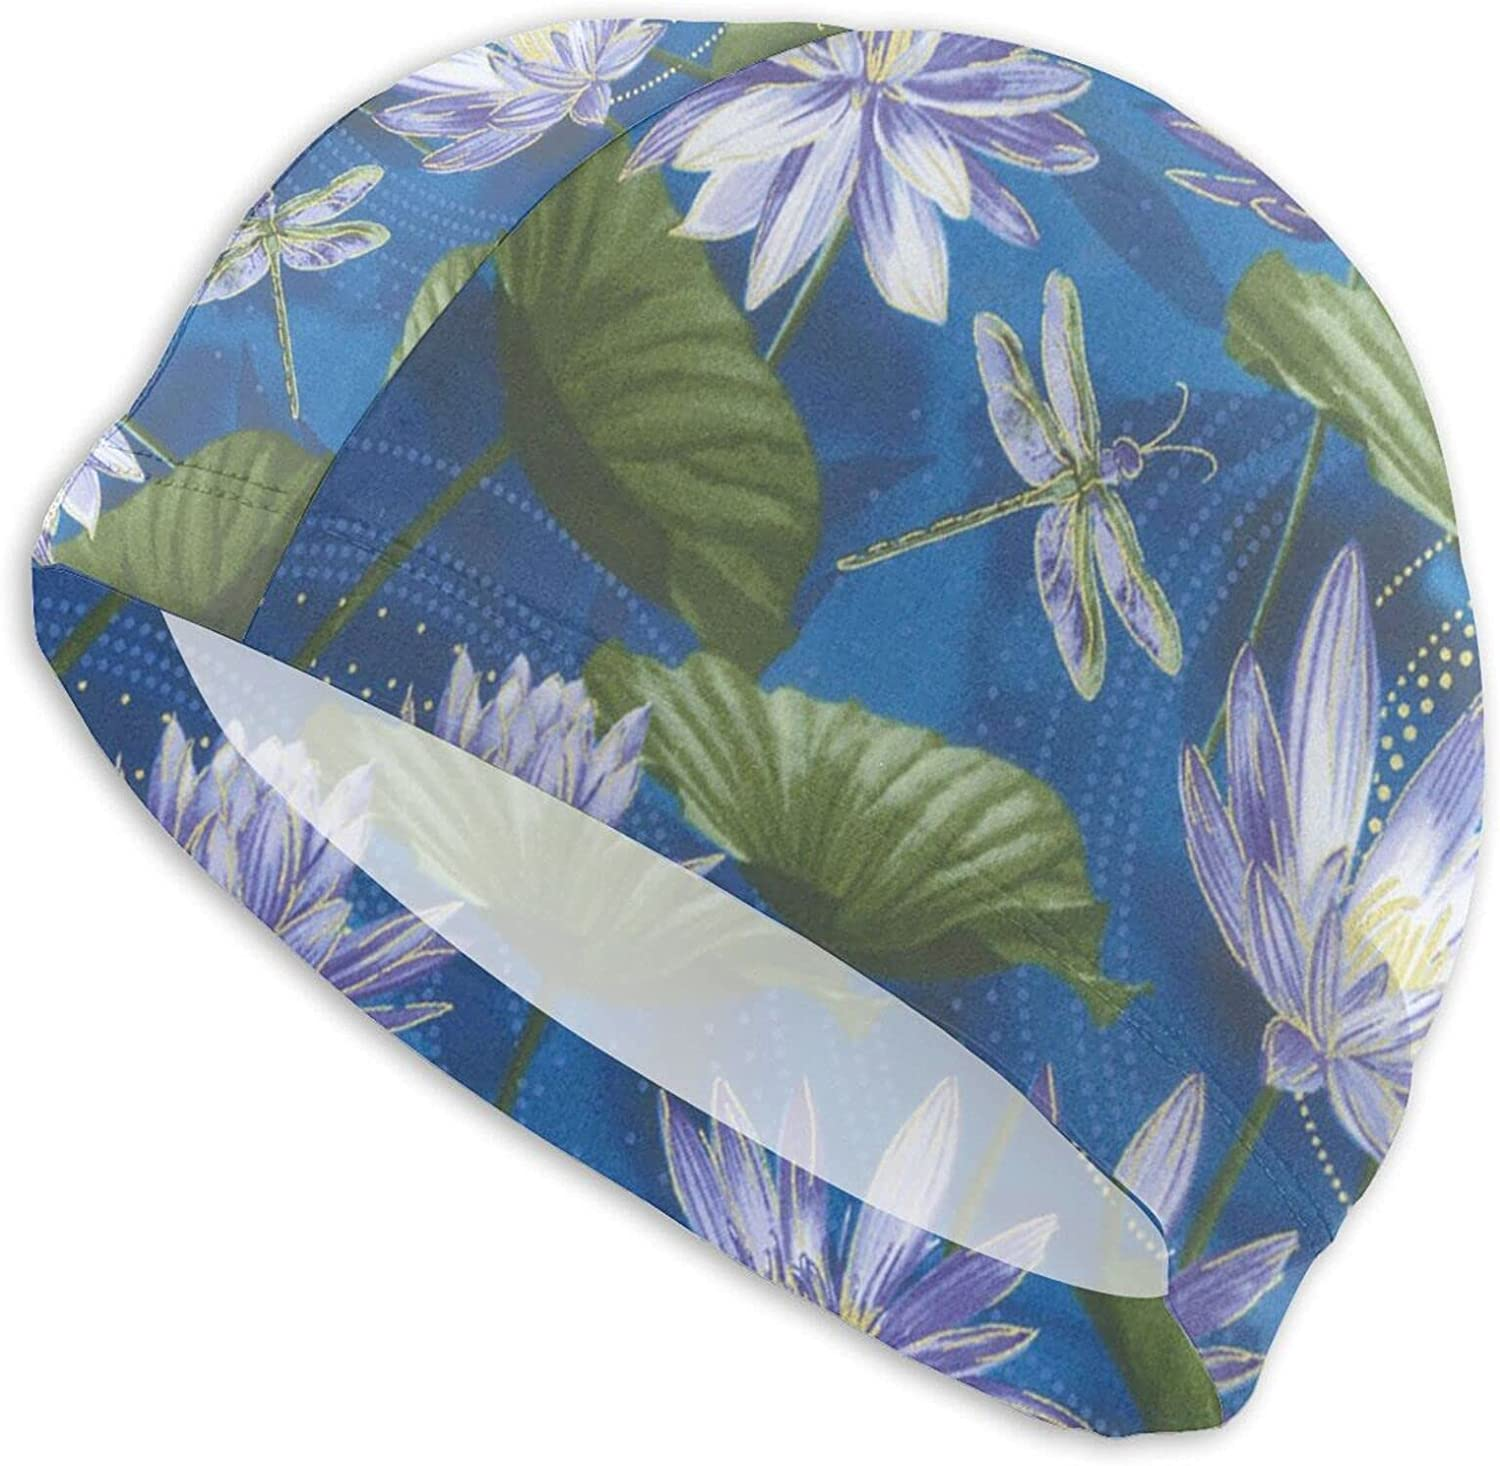 Jeezshop Fashion List price Water Lily and Dragonfly SEAL limited product Me Women Caps for Swim